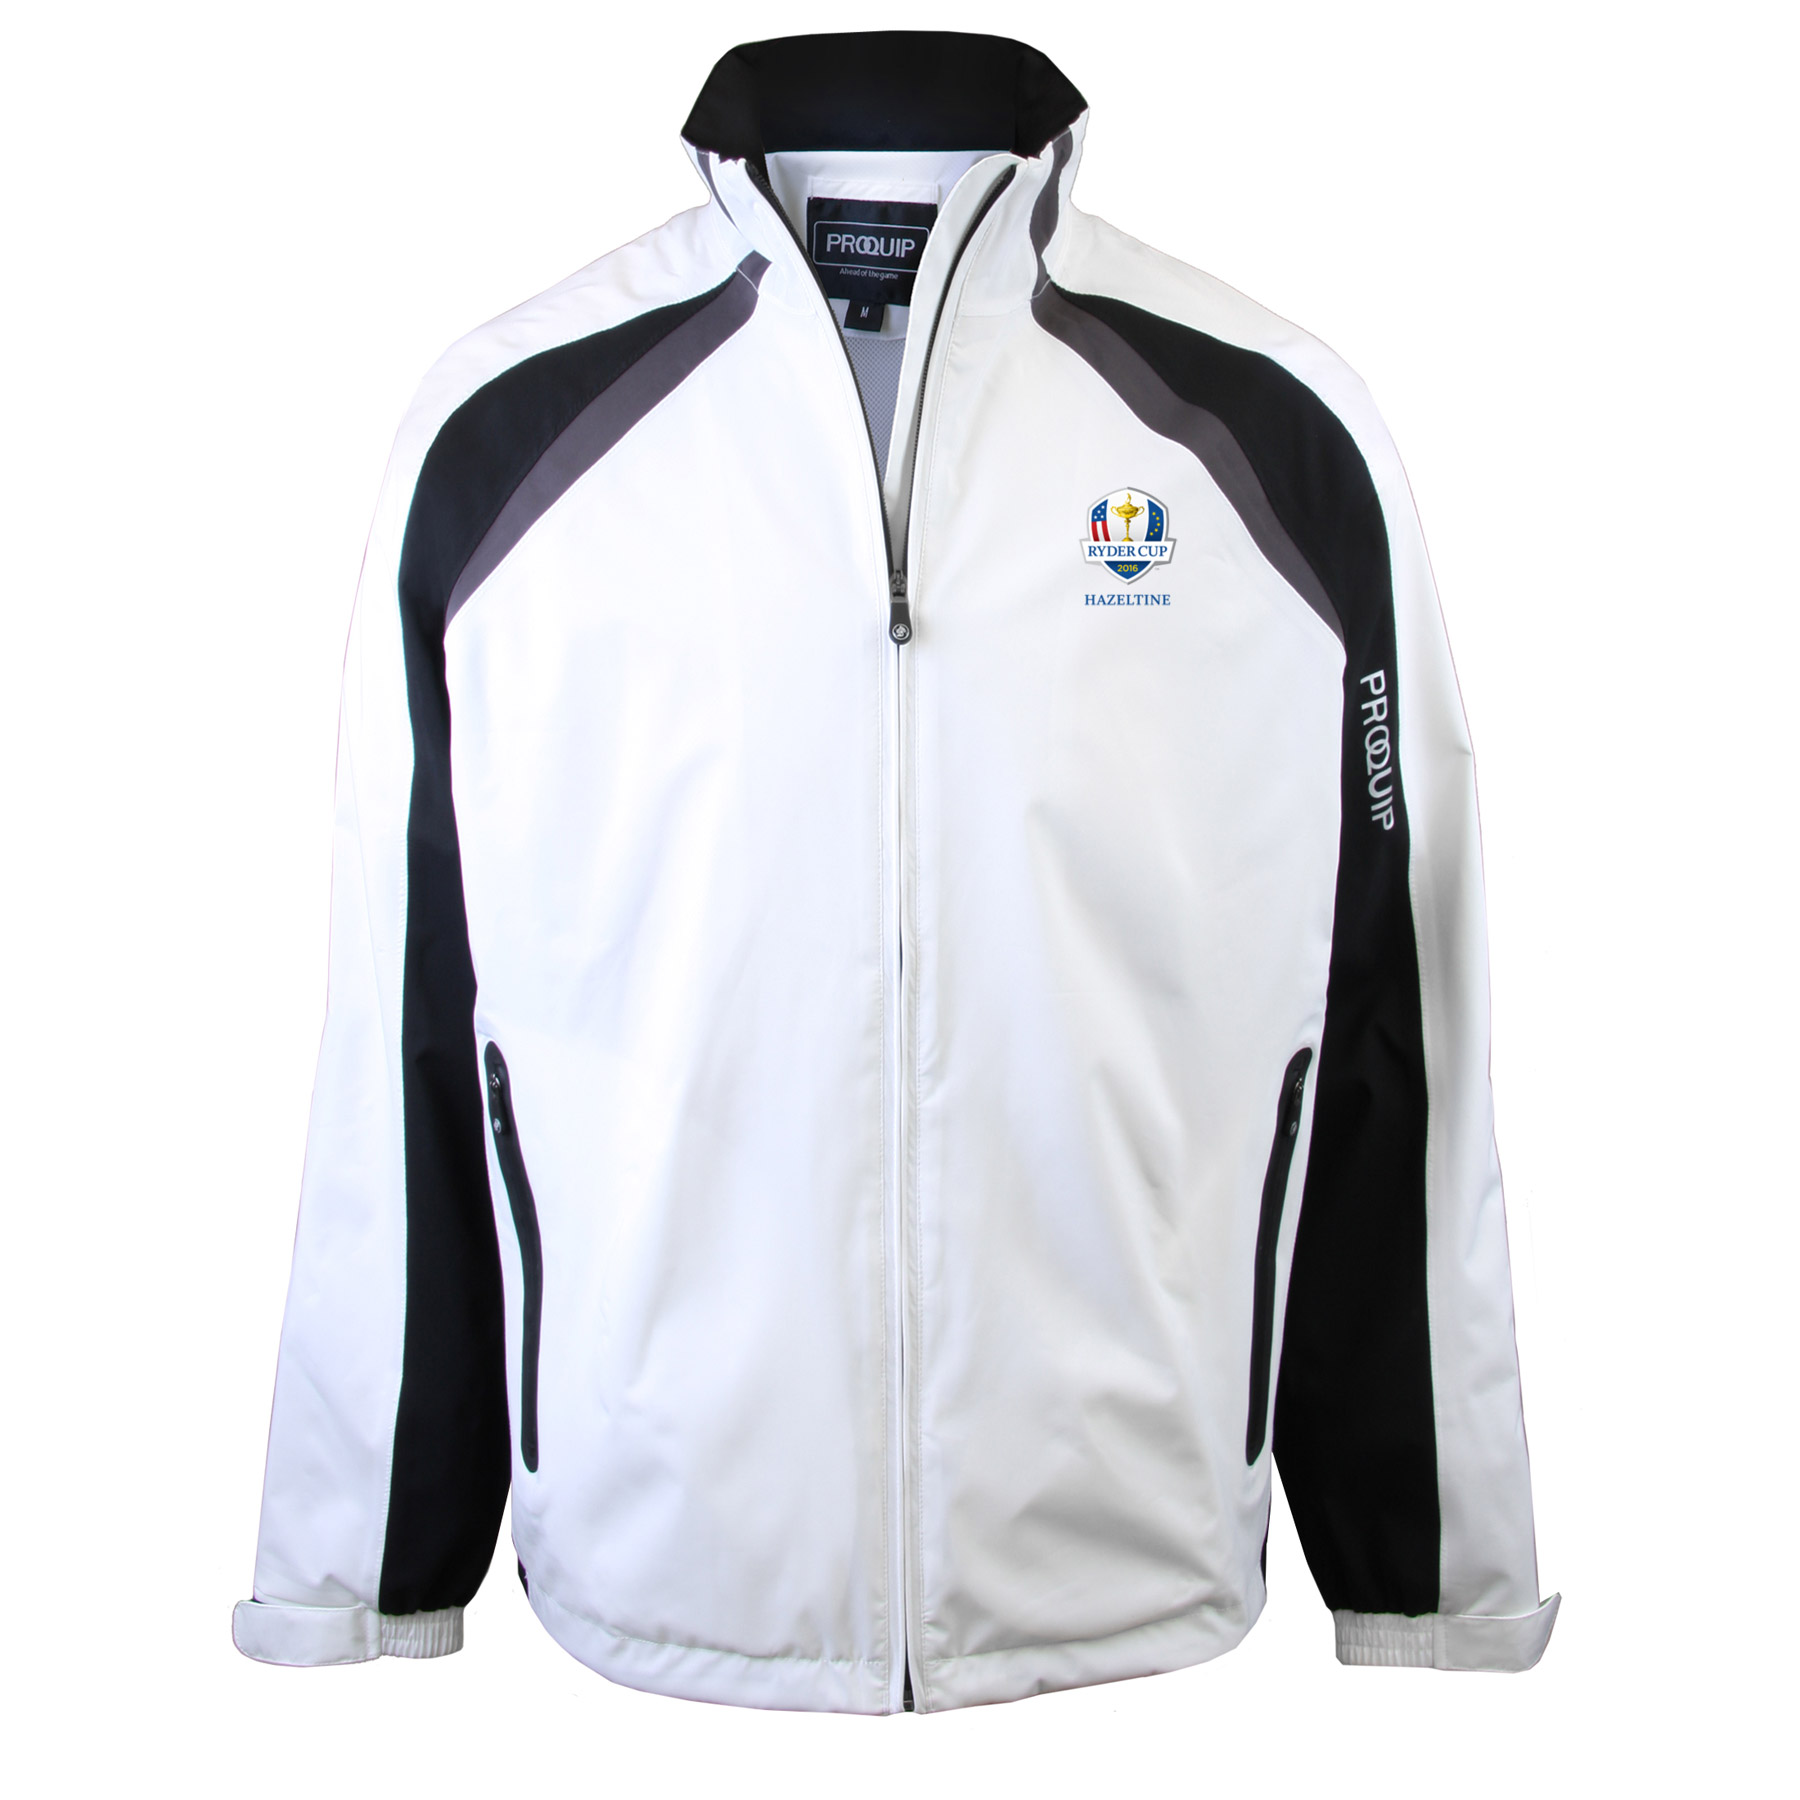 The 2016 Ryder Cup Proquip Trophy Waterproof Jacket - White/Black/Grey